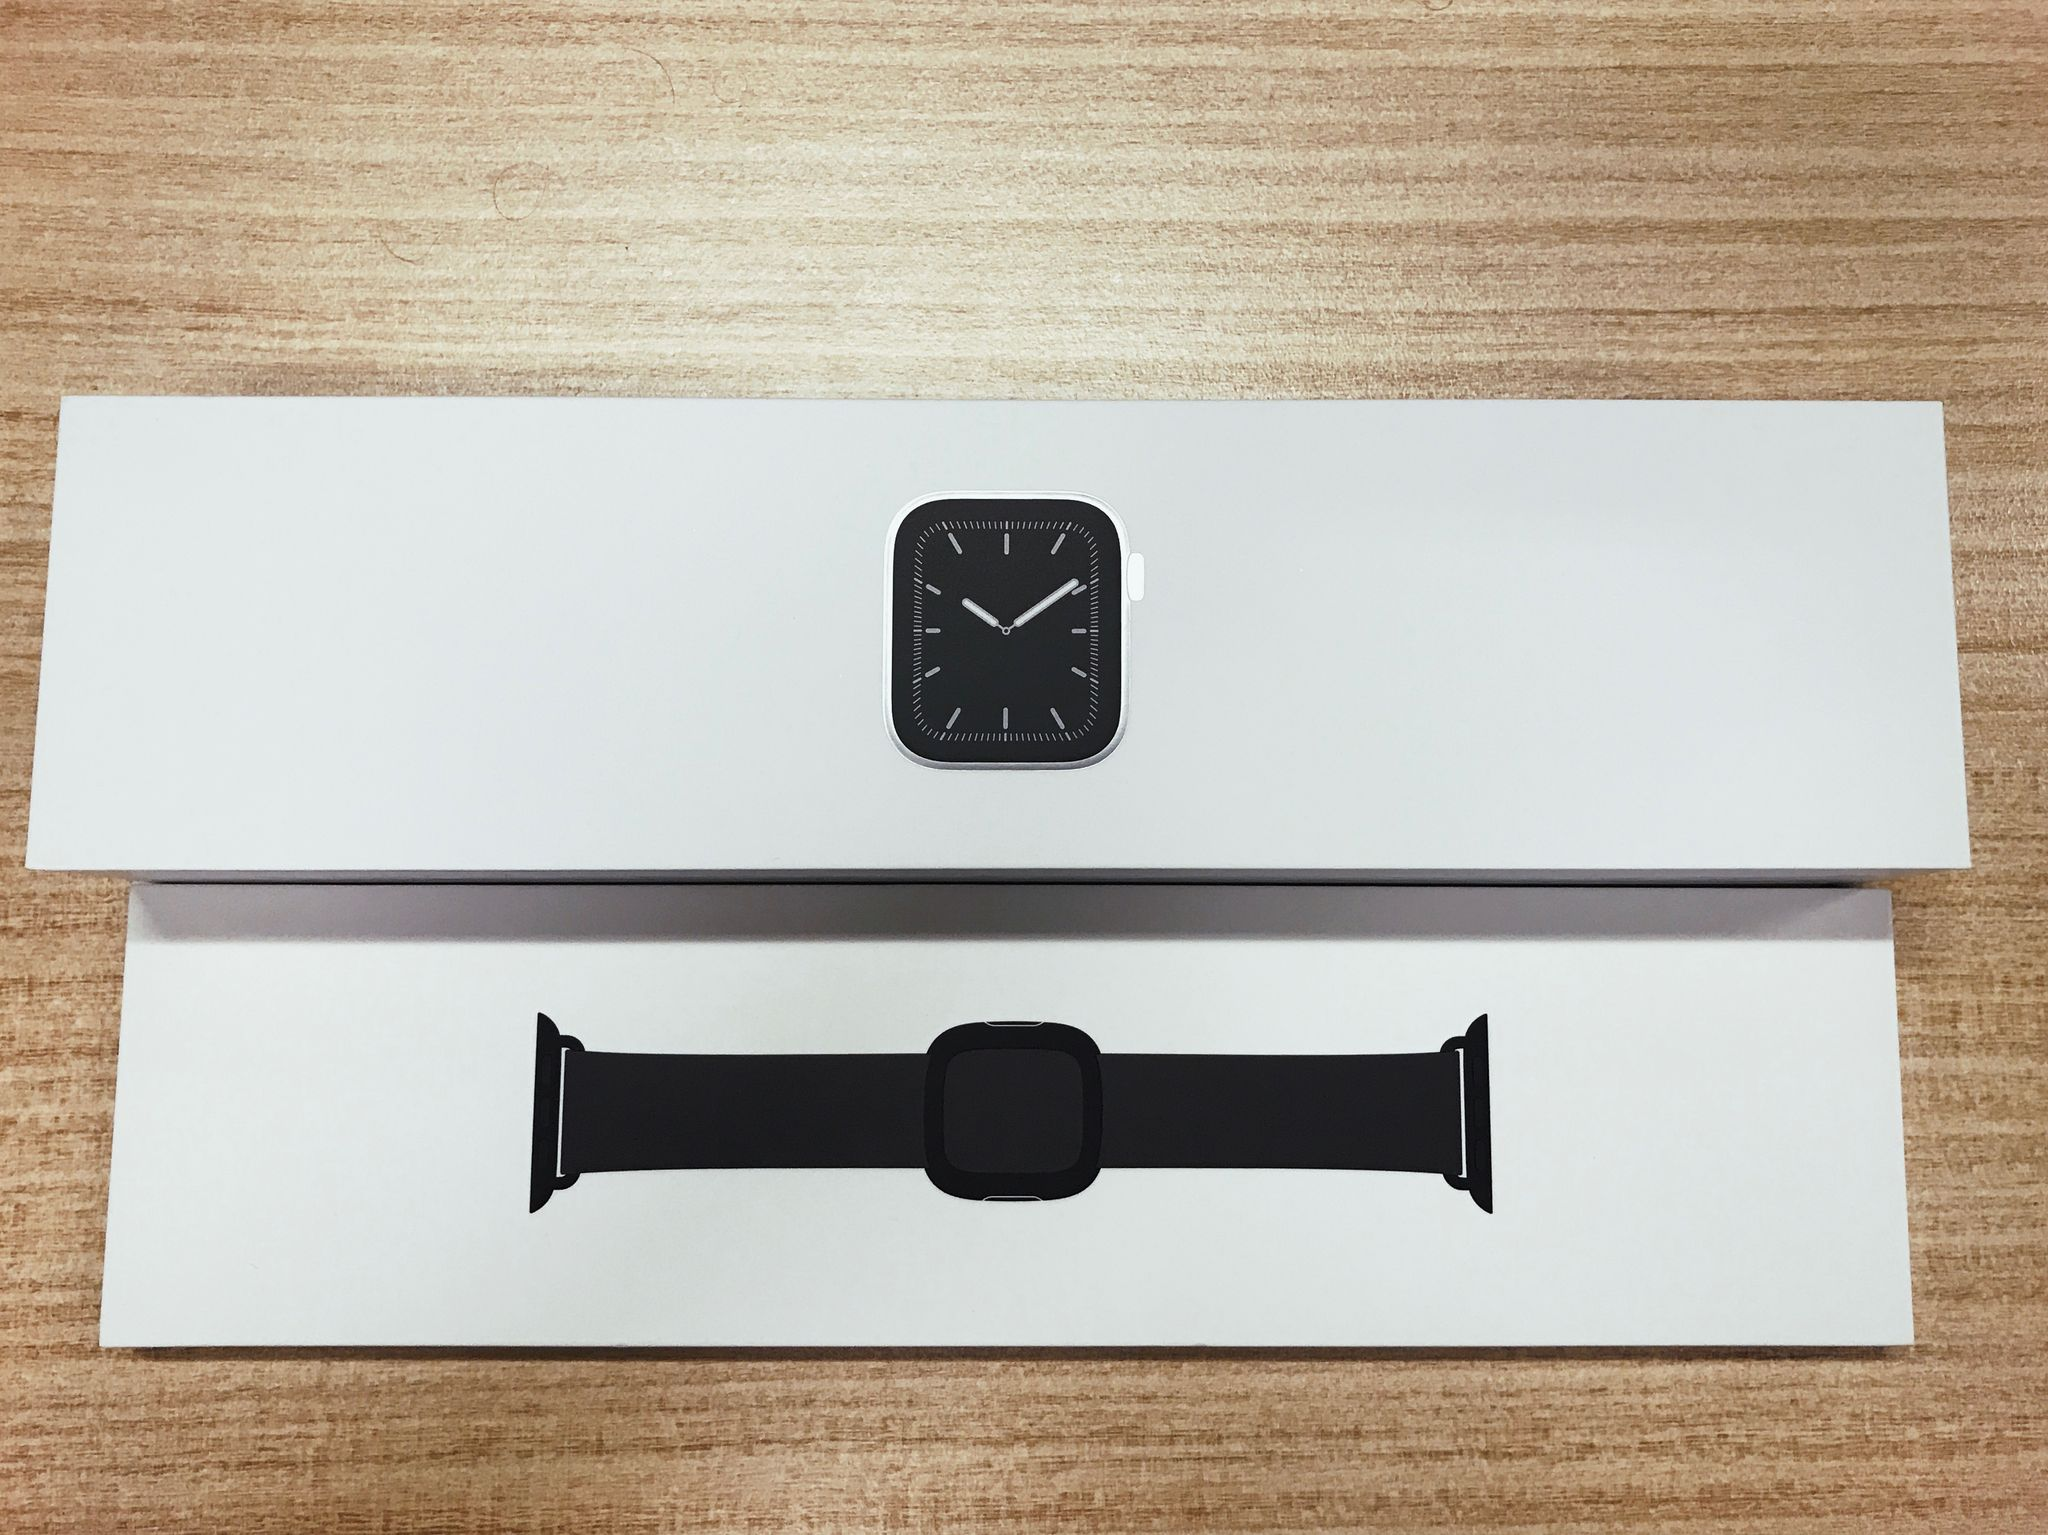 A photo of the boxes of an Apple Watch Series 5 and a band.